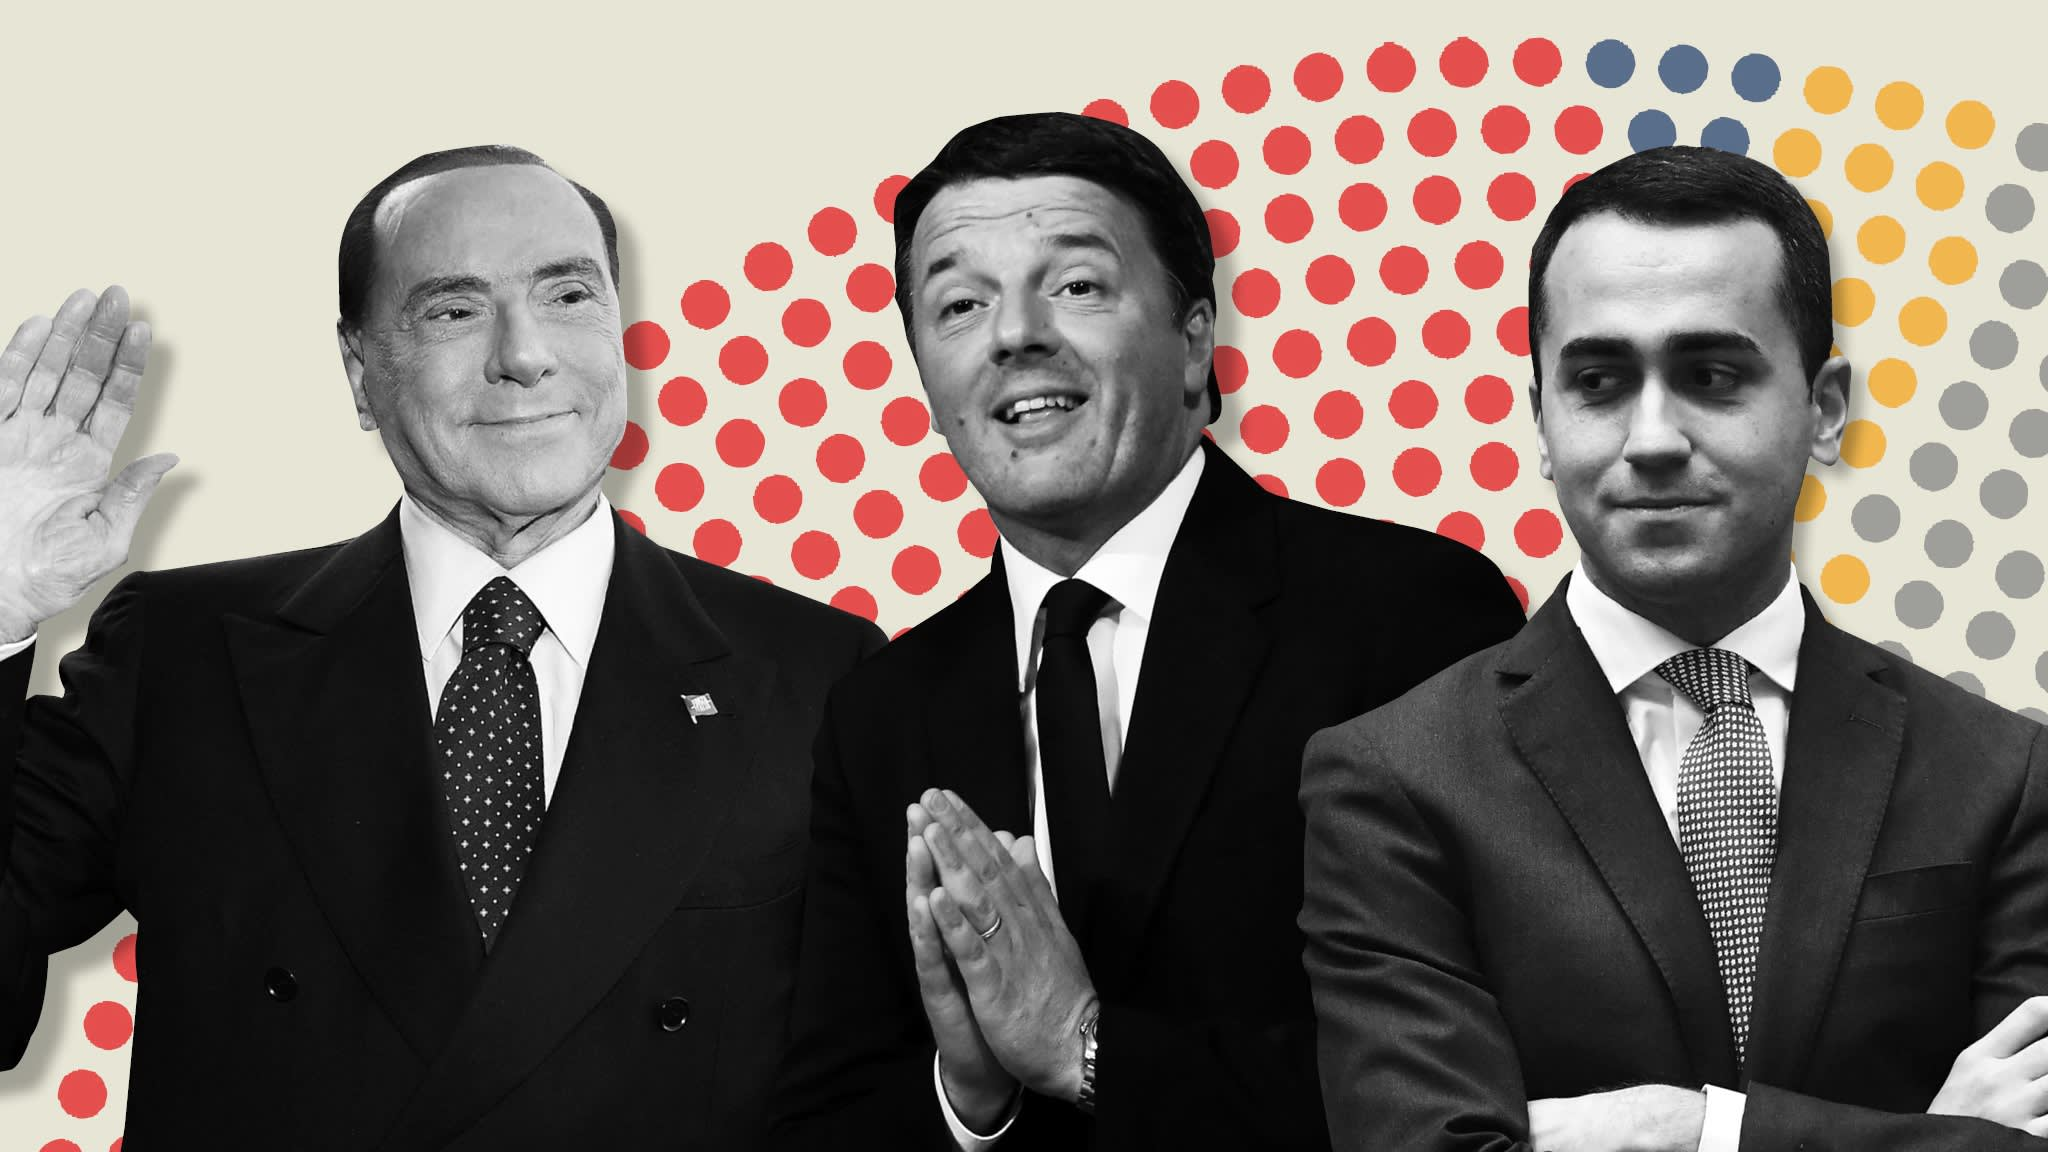 Misinformation & Uncertainty Ahead of Italian Election